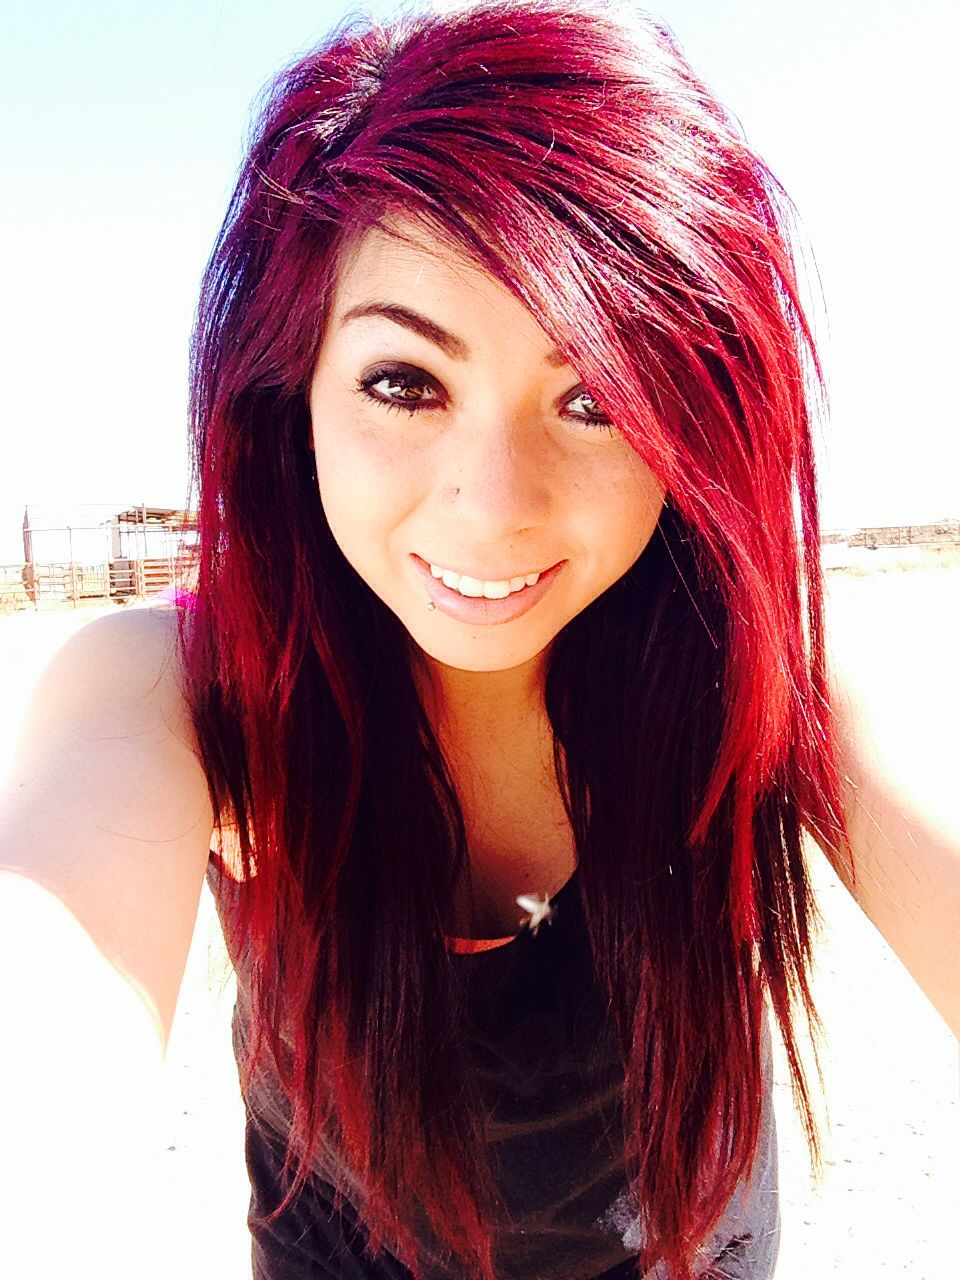 Intense Red And Magenta Mixed Hair  Hair Color Styles  Pinterest  Mixed H